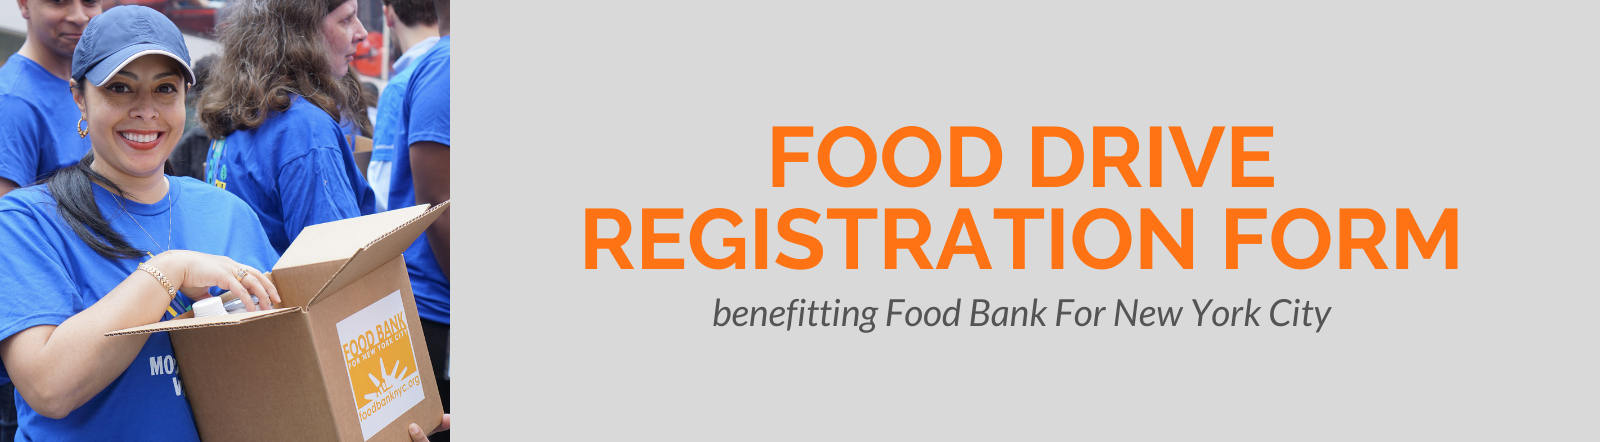 Food drive registration form banner